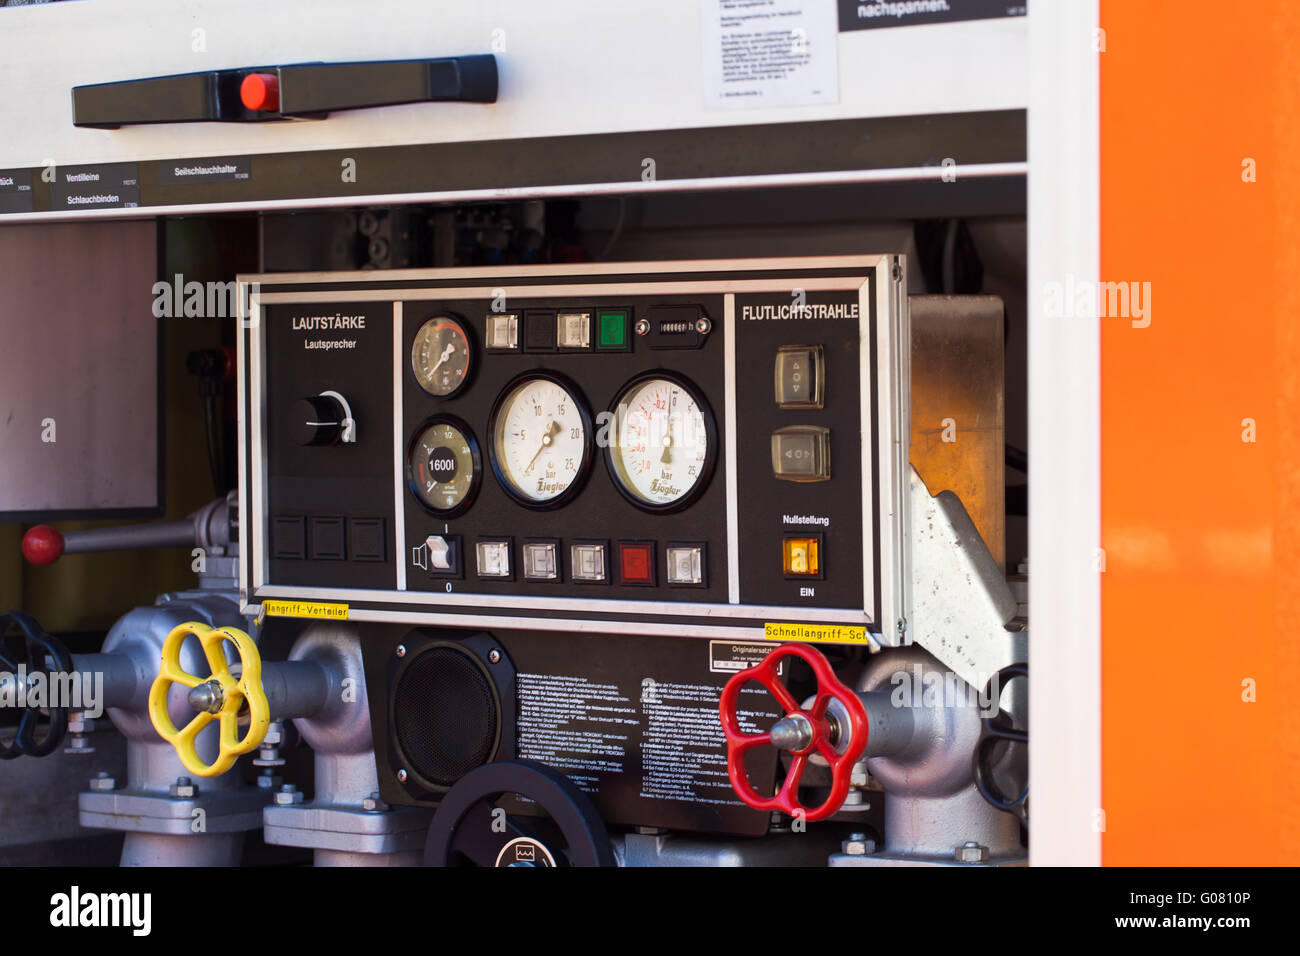 Fire brigade operating panel on emergency vehicle - Stock Image